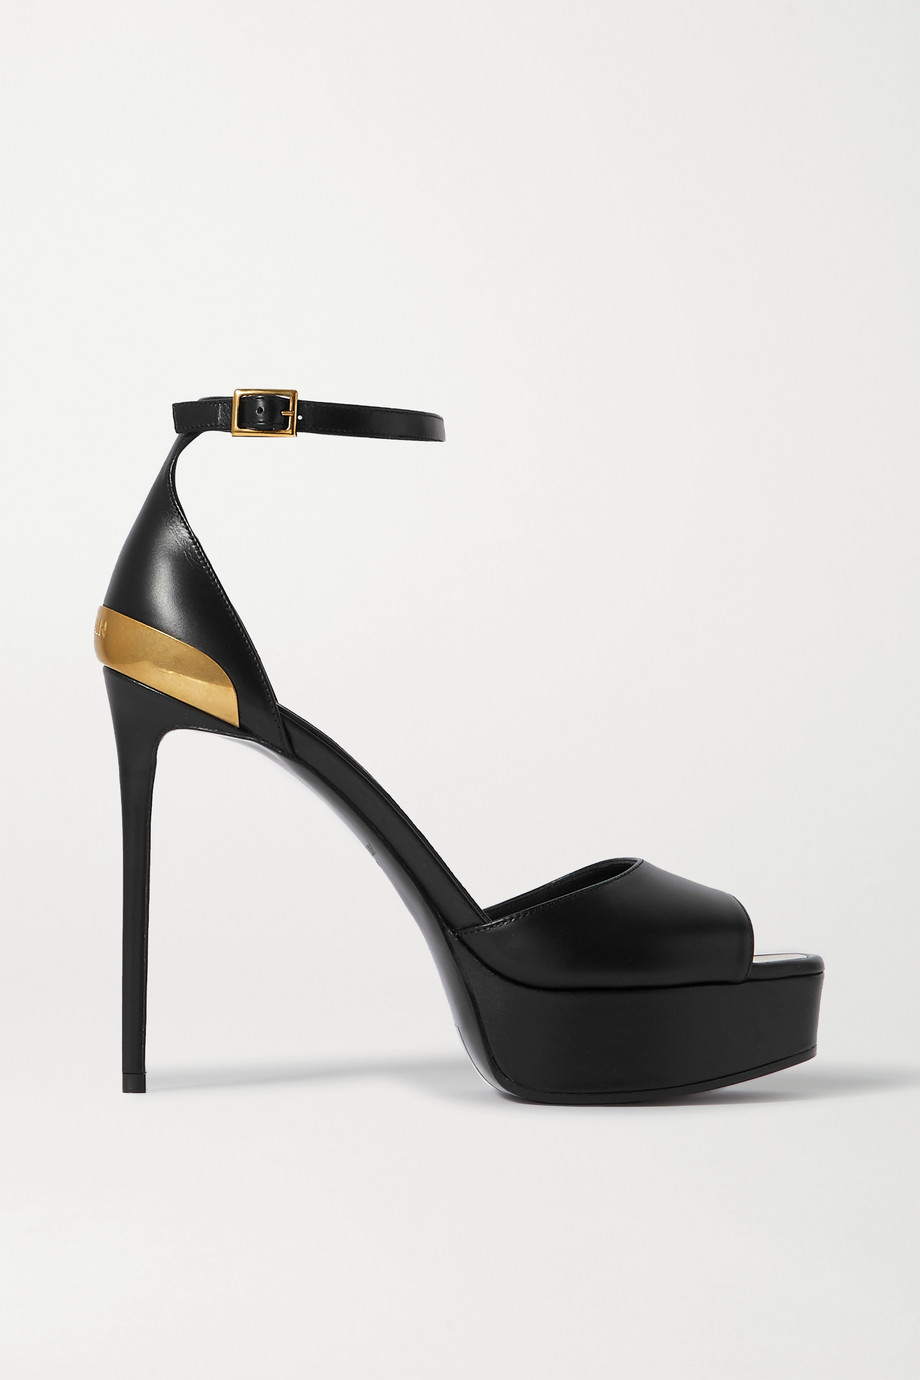 Balmain Pippa embellished leather platform sandals